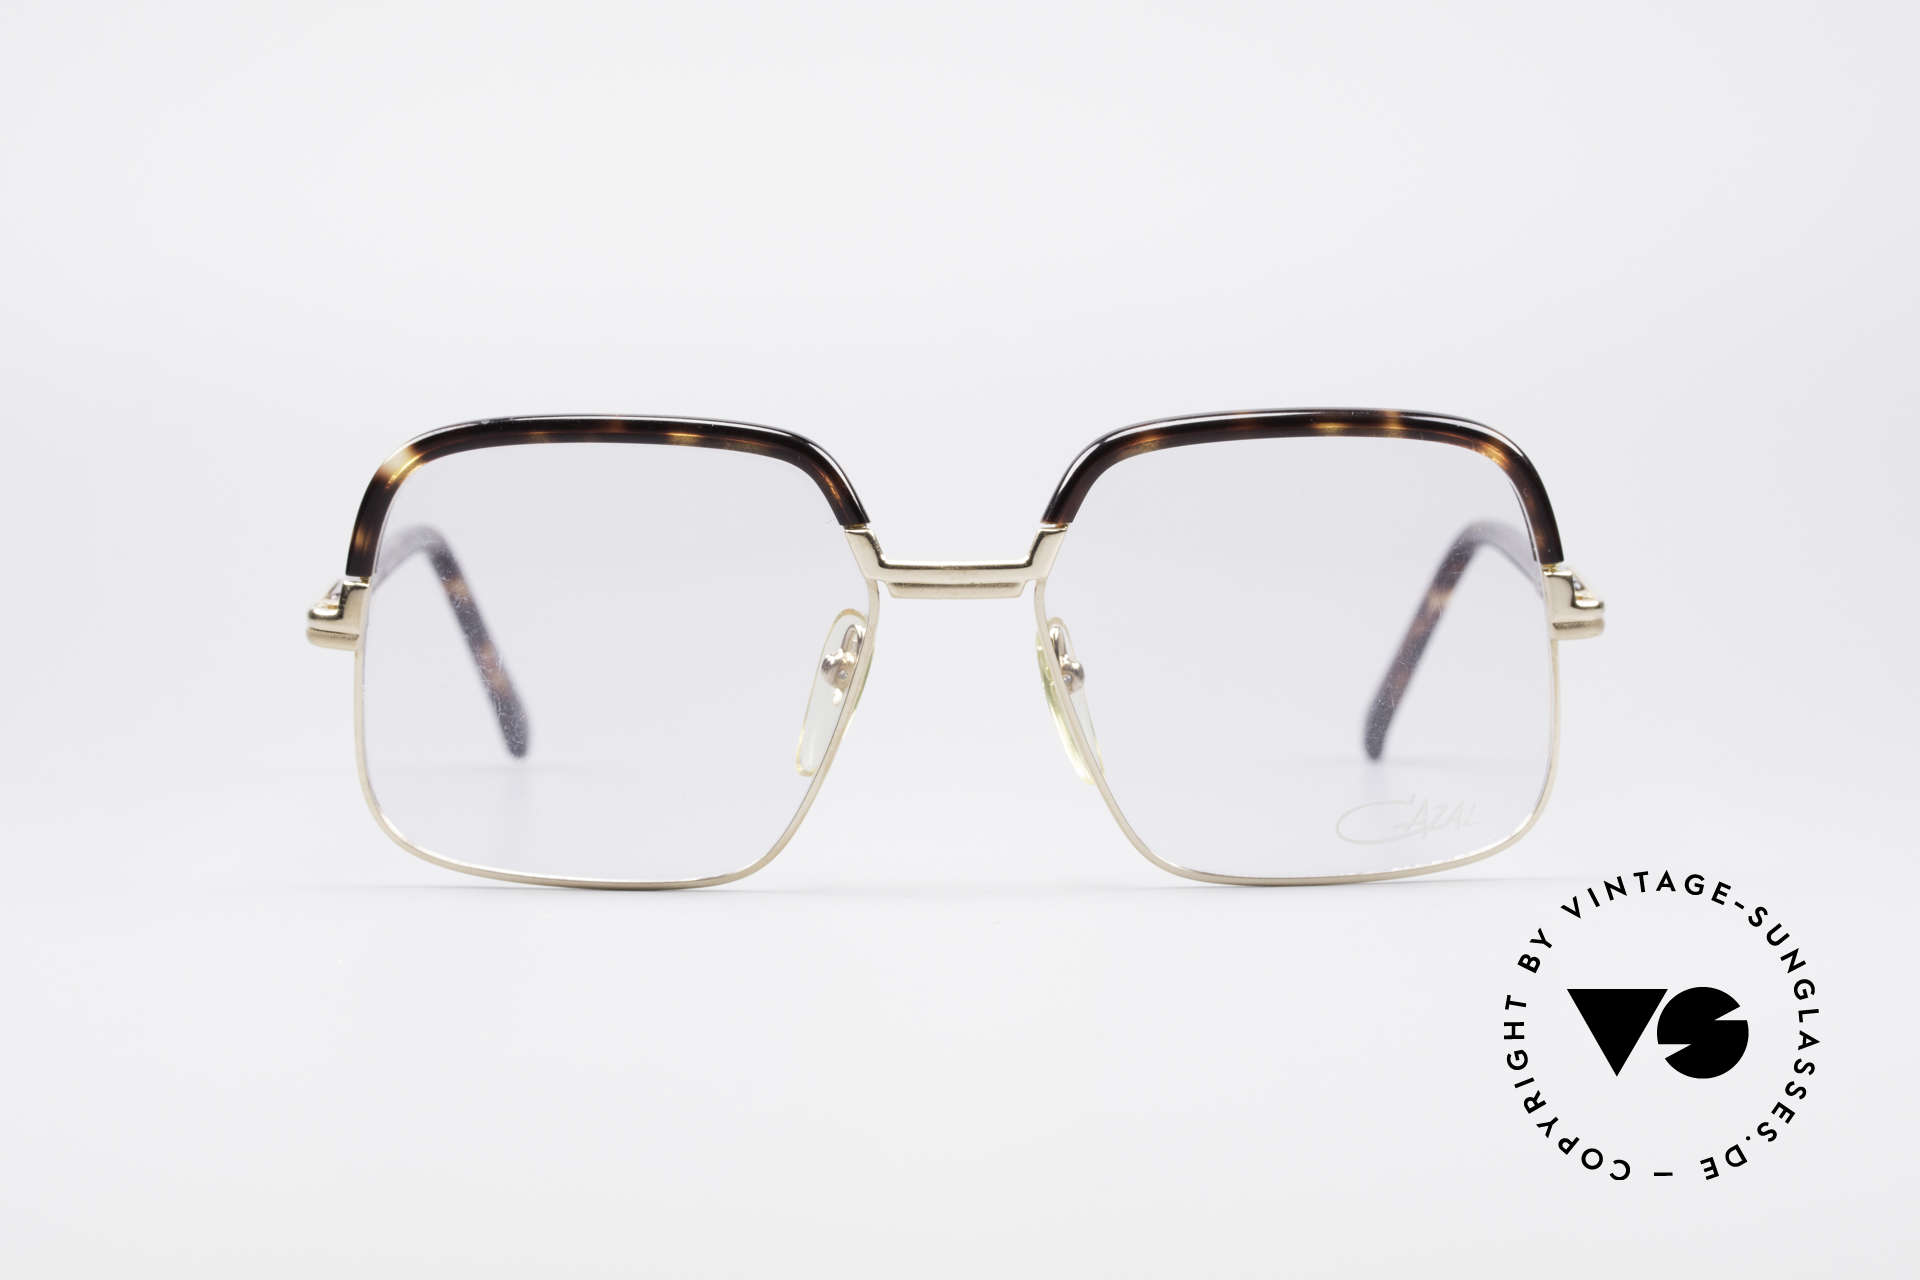 Cazal 704 70's Combi Glasses First Series, model of the first series by CAri ZALloni (CAZAL), ever!, Made for Men